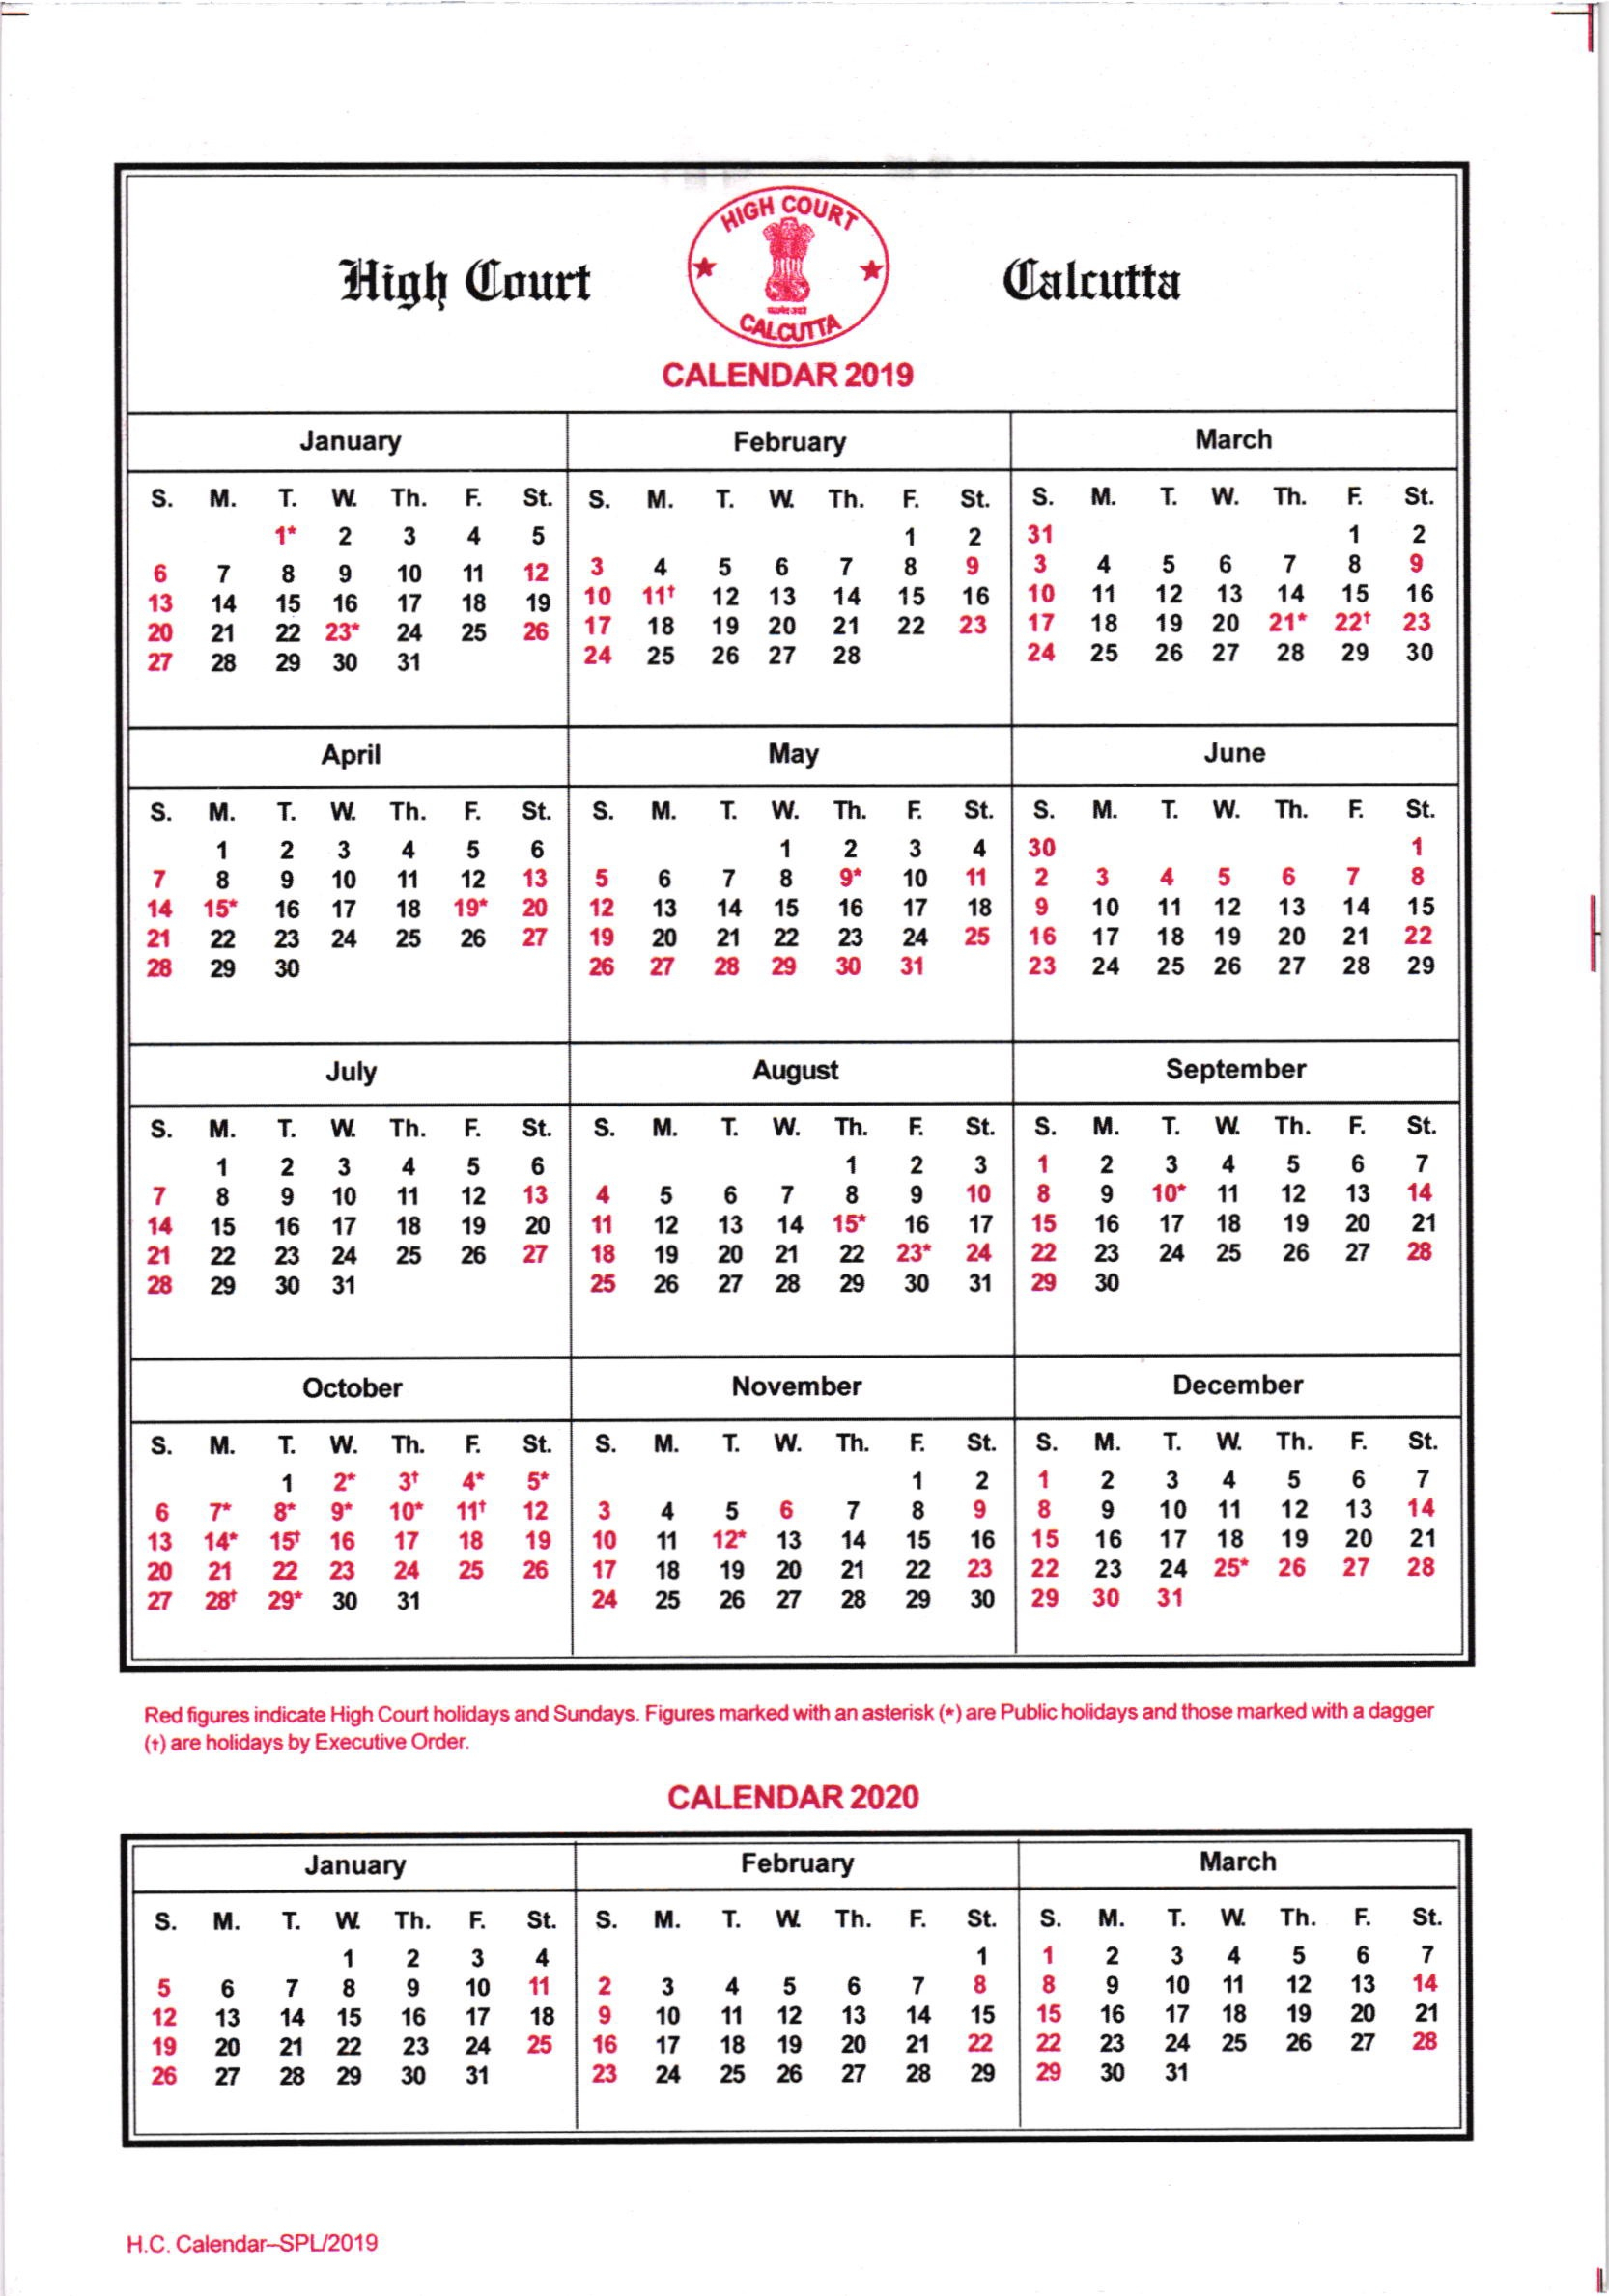 Calcutta High Court Calendar 2019 pertaining to Kerala High Court Calendar